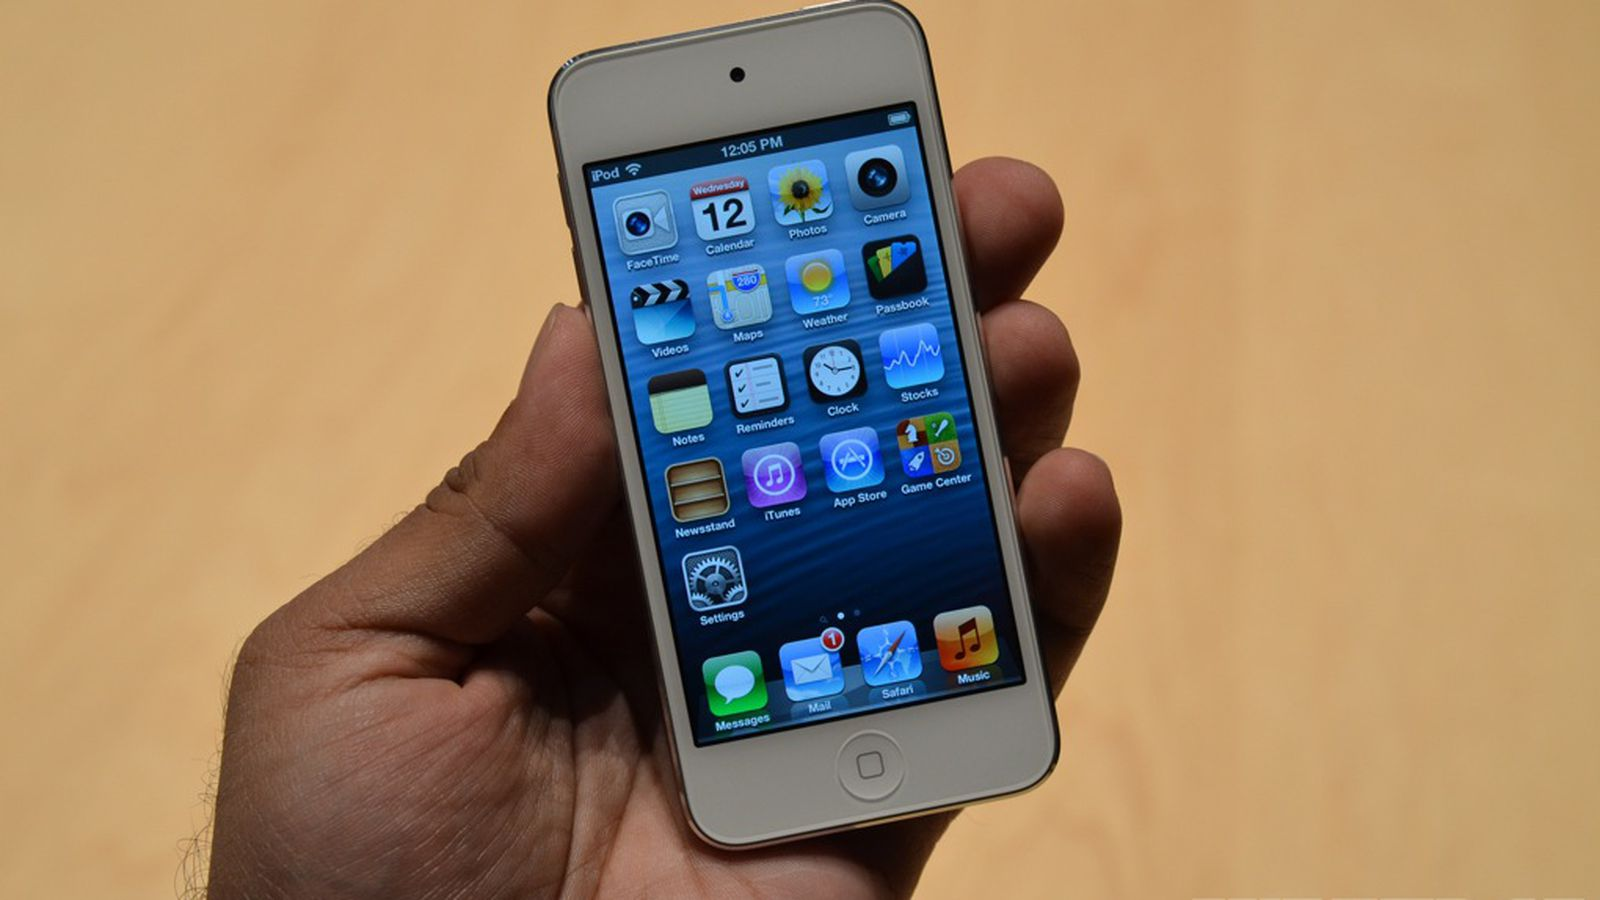 Apple's new iPod touch hands-on photos and video